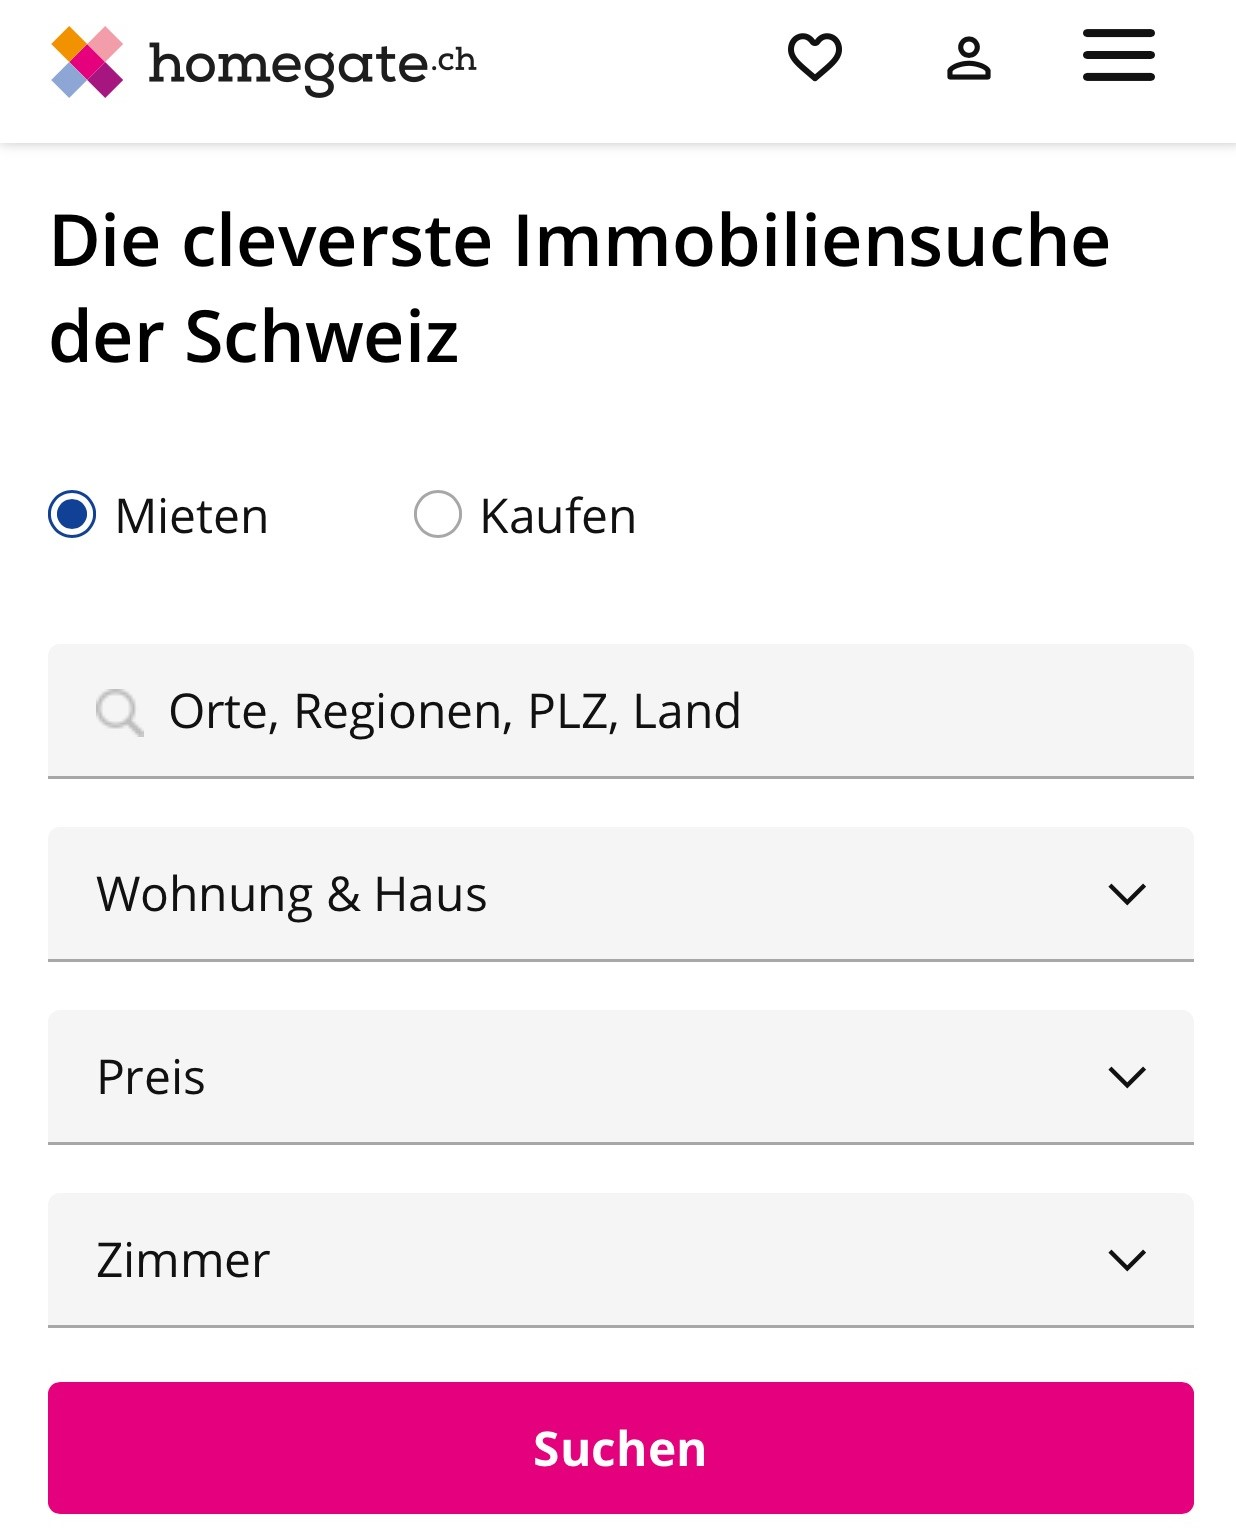 homegate.ch